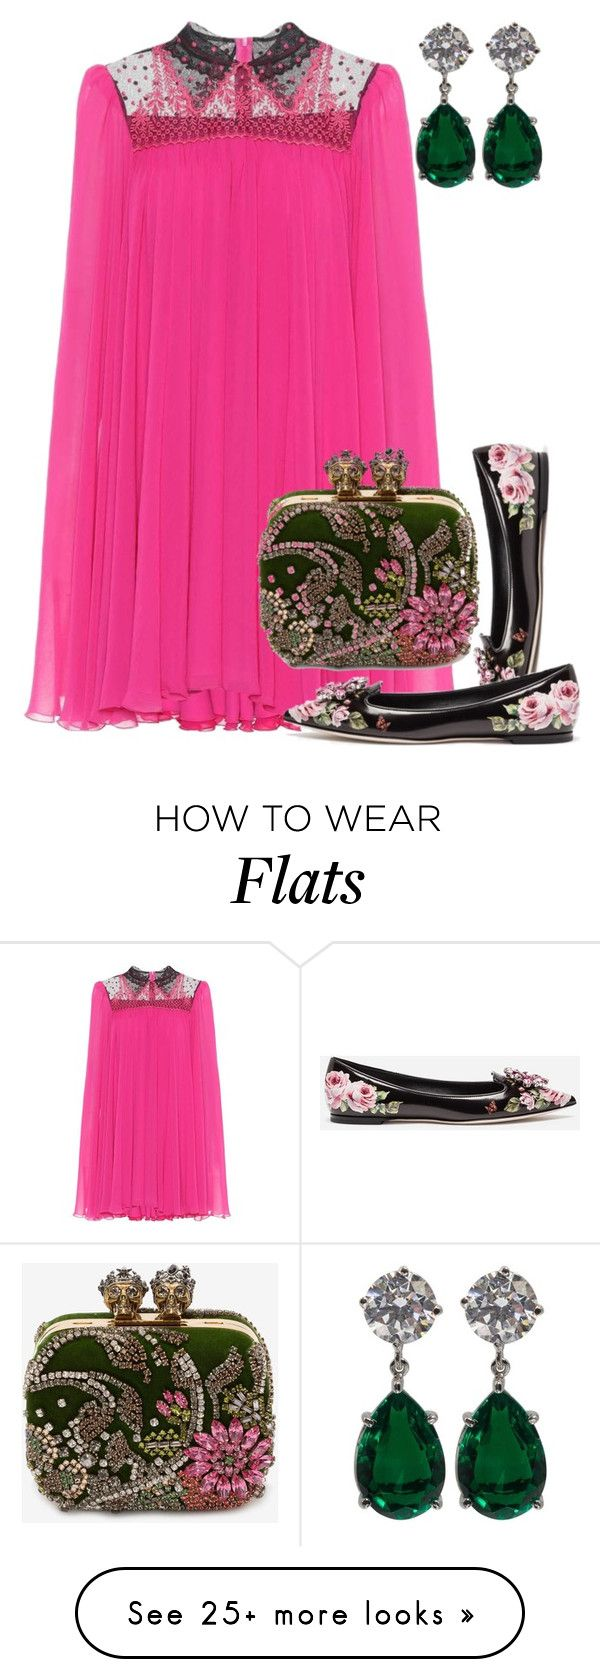 """""""Love"""" by forgottenmelody on Polyvore featuring Philosophy di Lorenzo Serafini, Dolce&Gabbana, Alexander McQueen, contestentry and NYFWHotPink"""